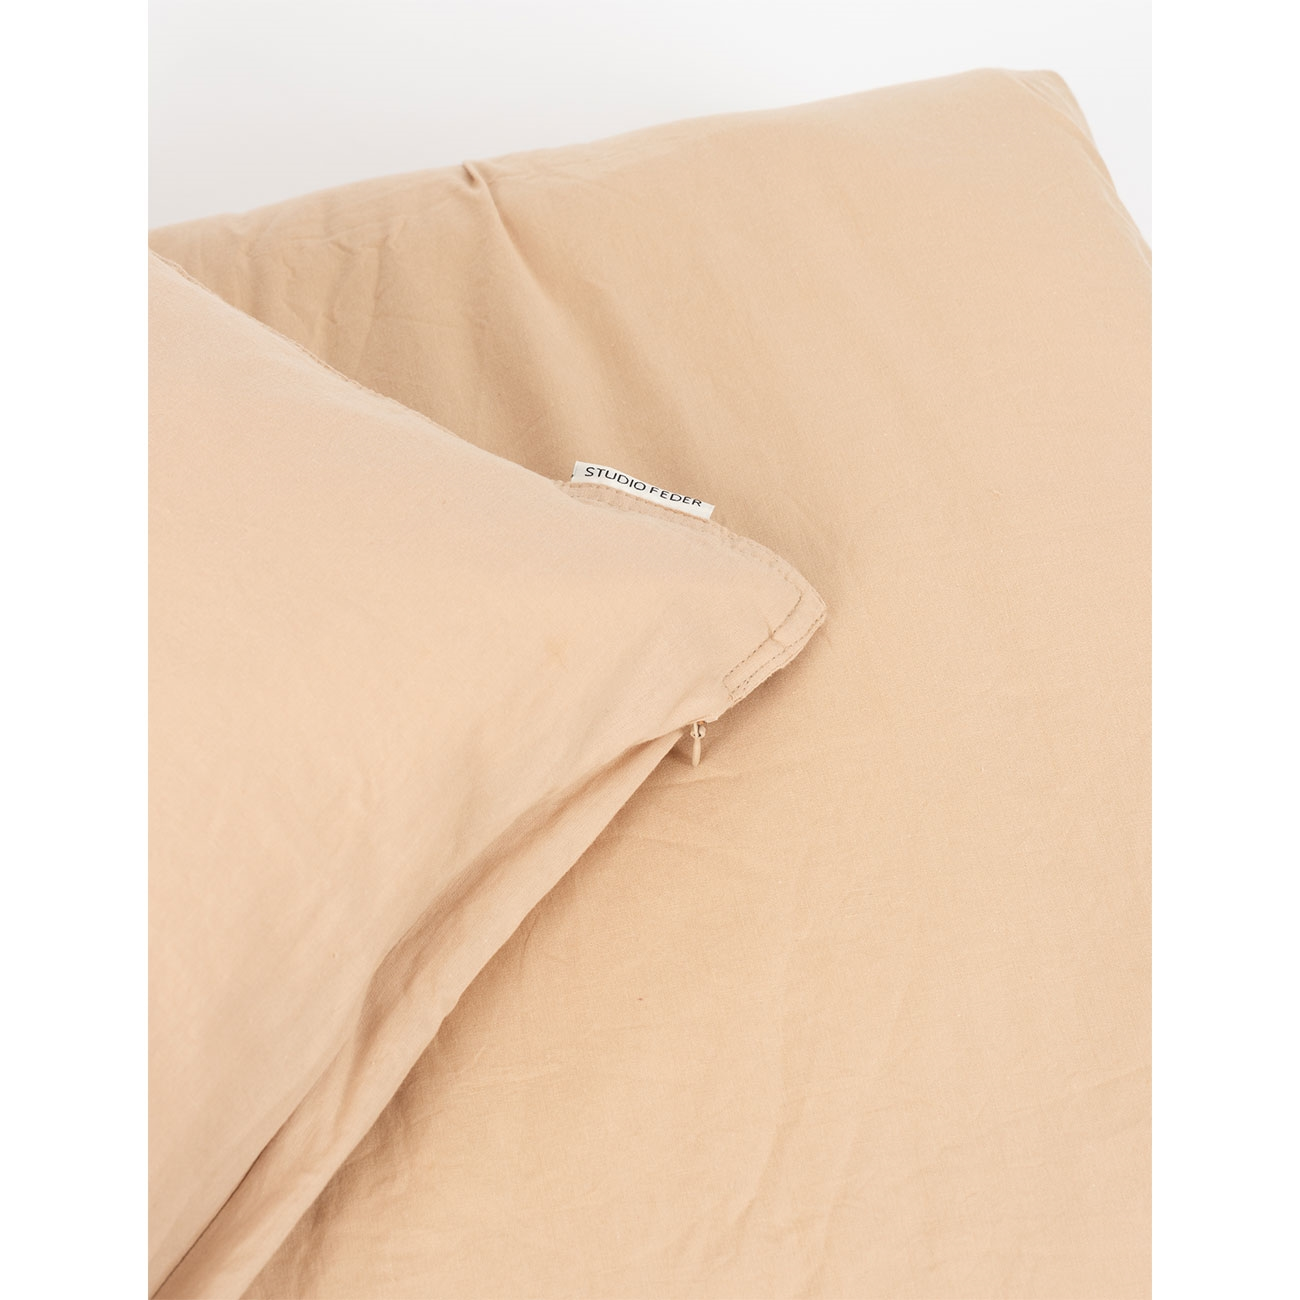 Picture of: Studio Feder Bedding Beige